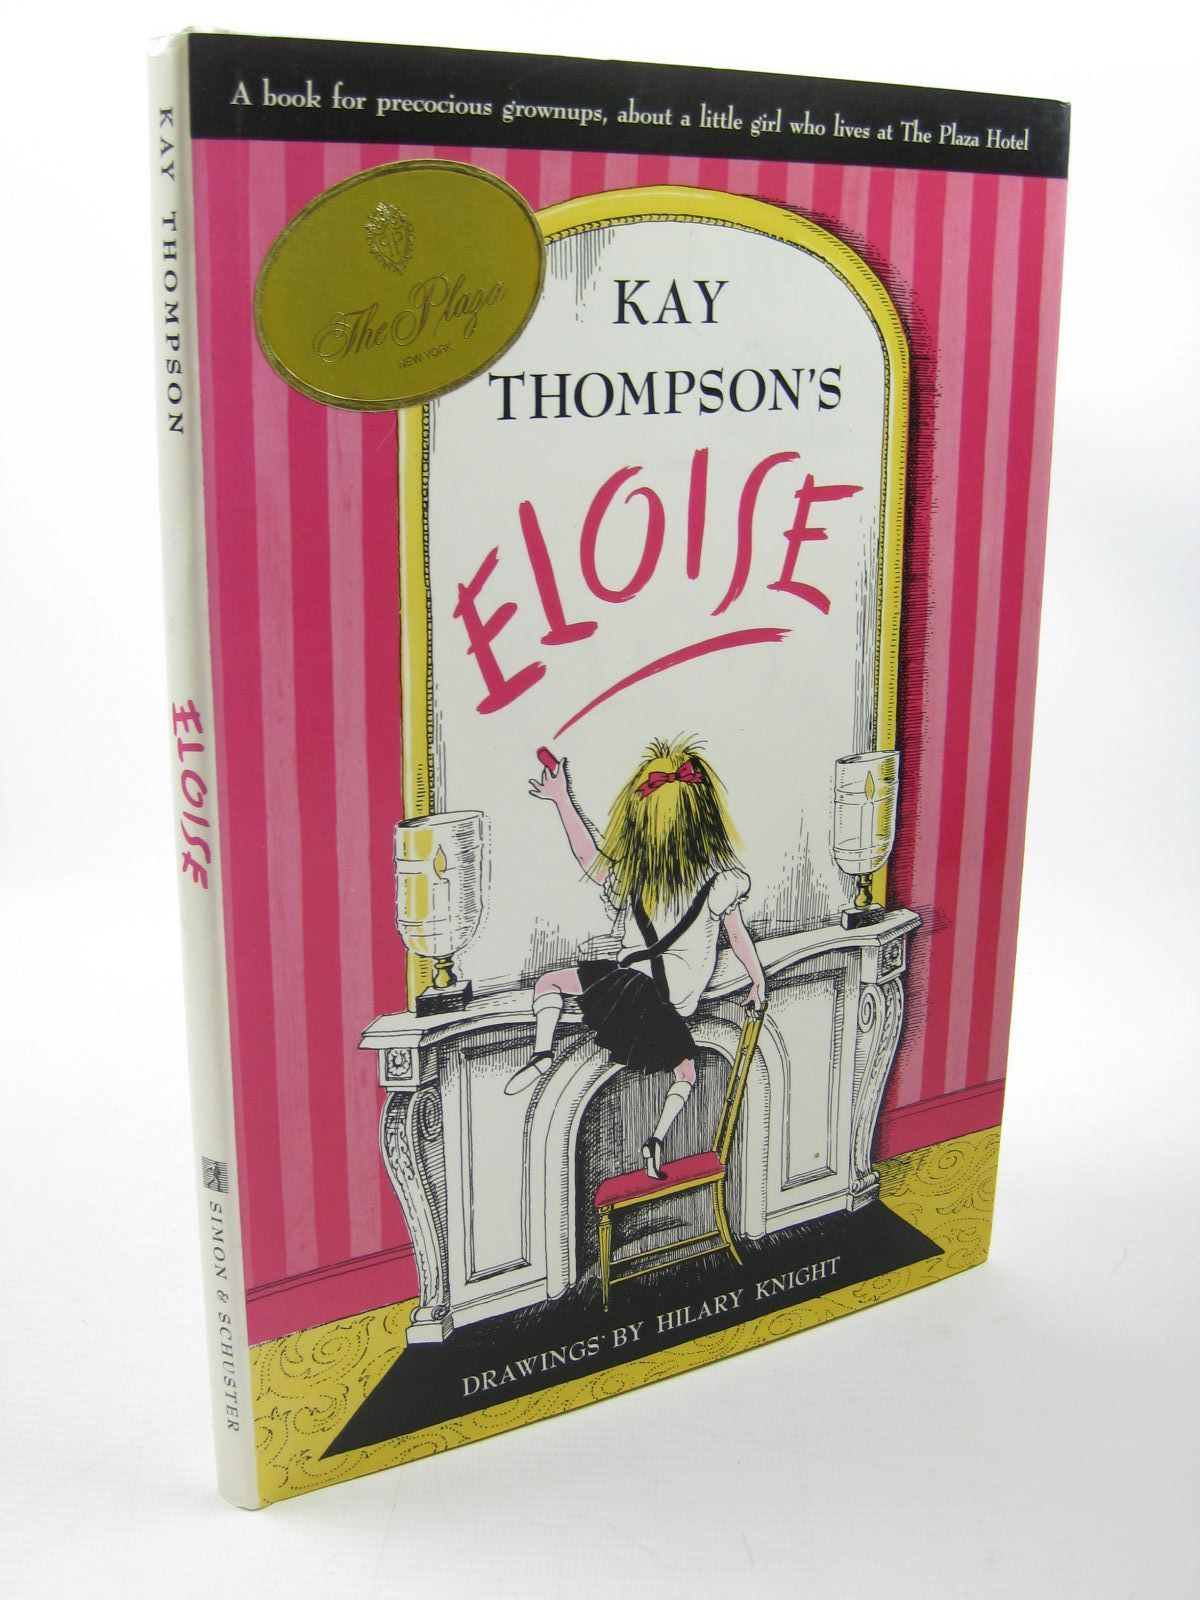 Photo of ELOISE written by Thompson, Kay illustrated by Knight, Hilary published by Simon & Schuster (STOCK CODE: 1312736)  for sale by Stella & Rose's Books